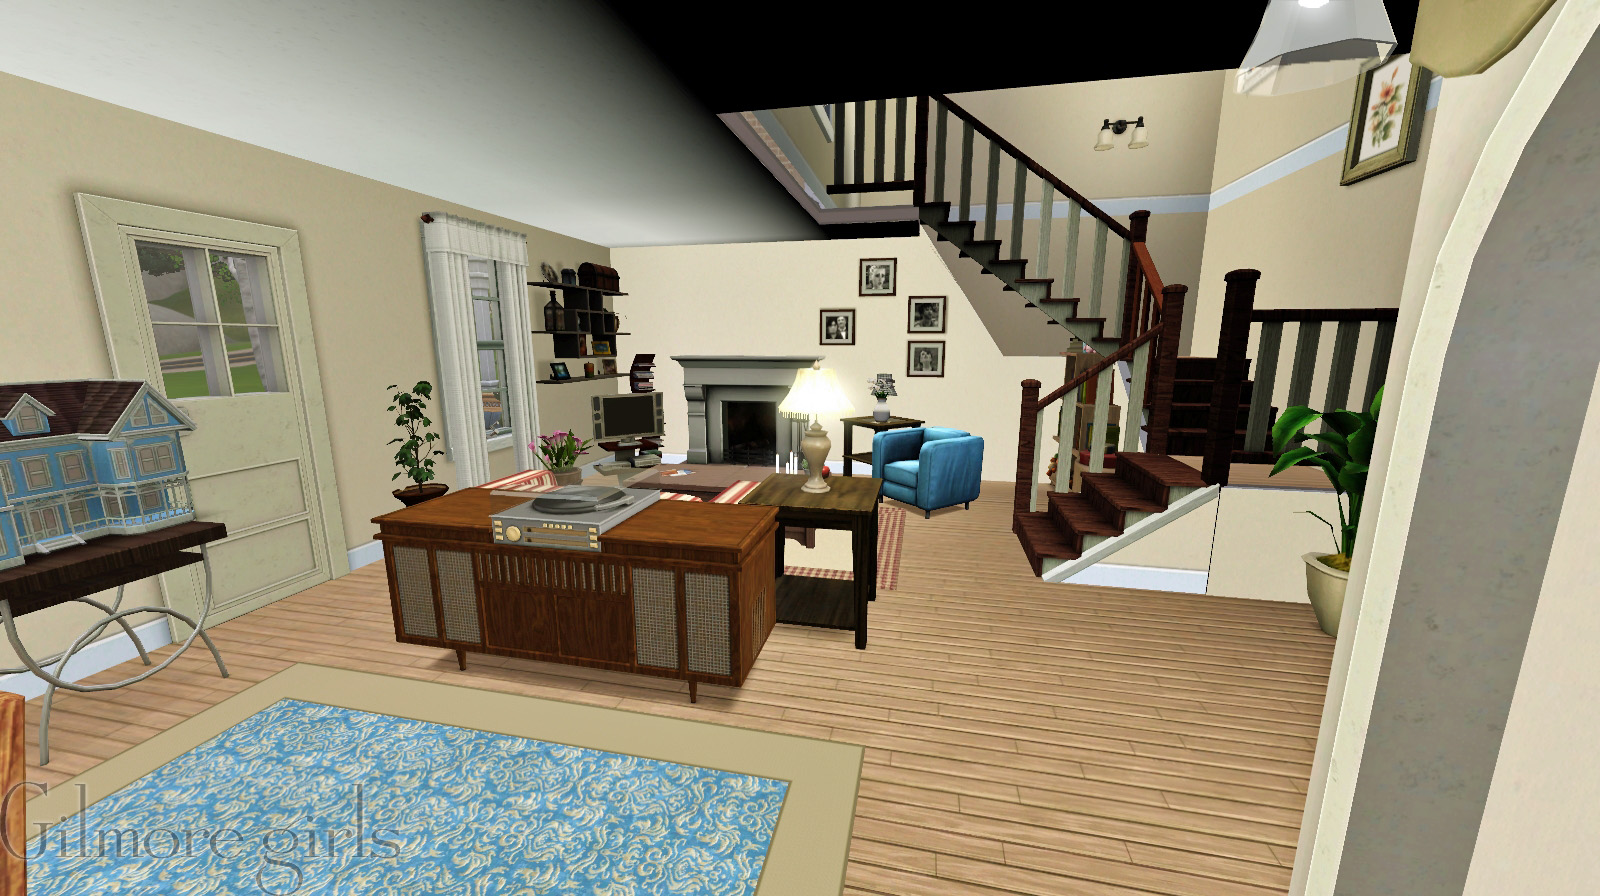 Gilmore Girls House mod the sims - the gilmore girls house